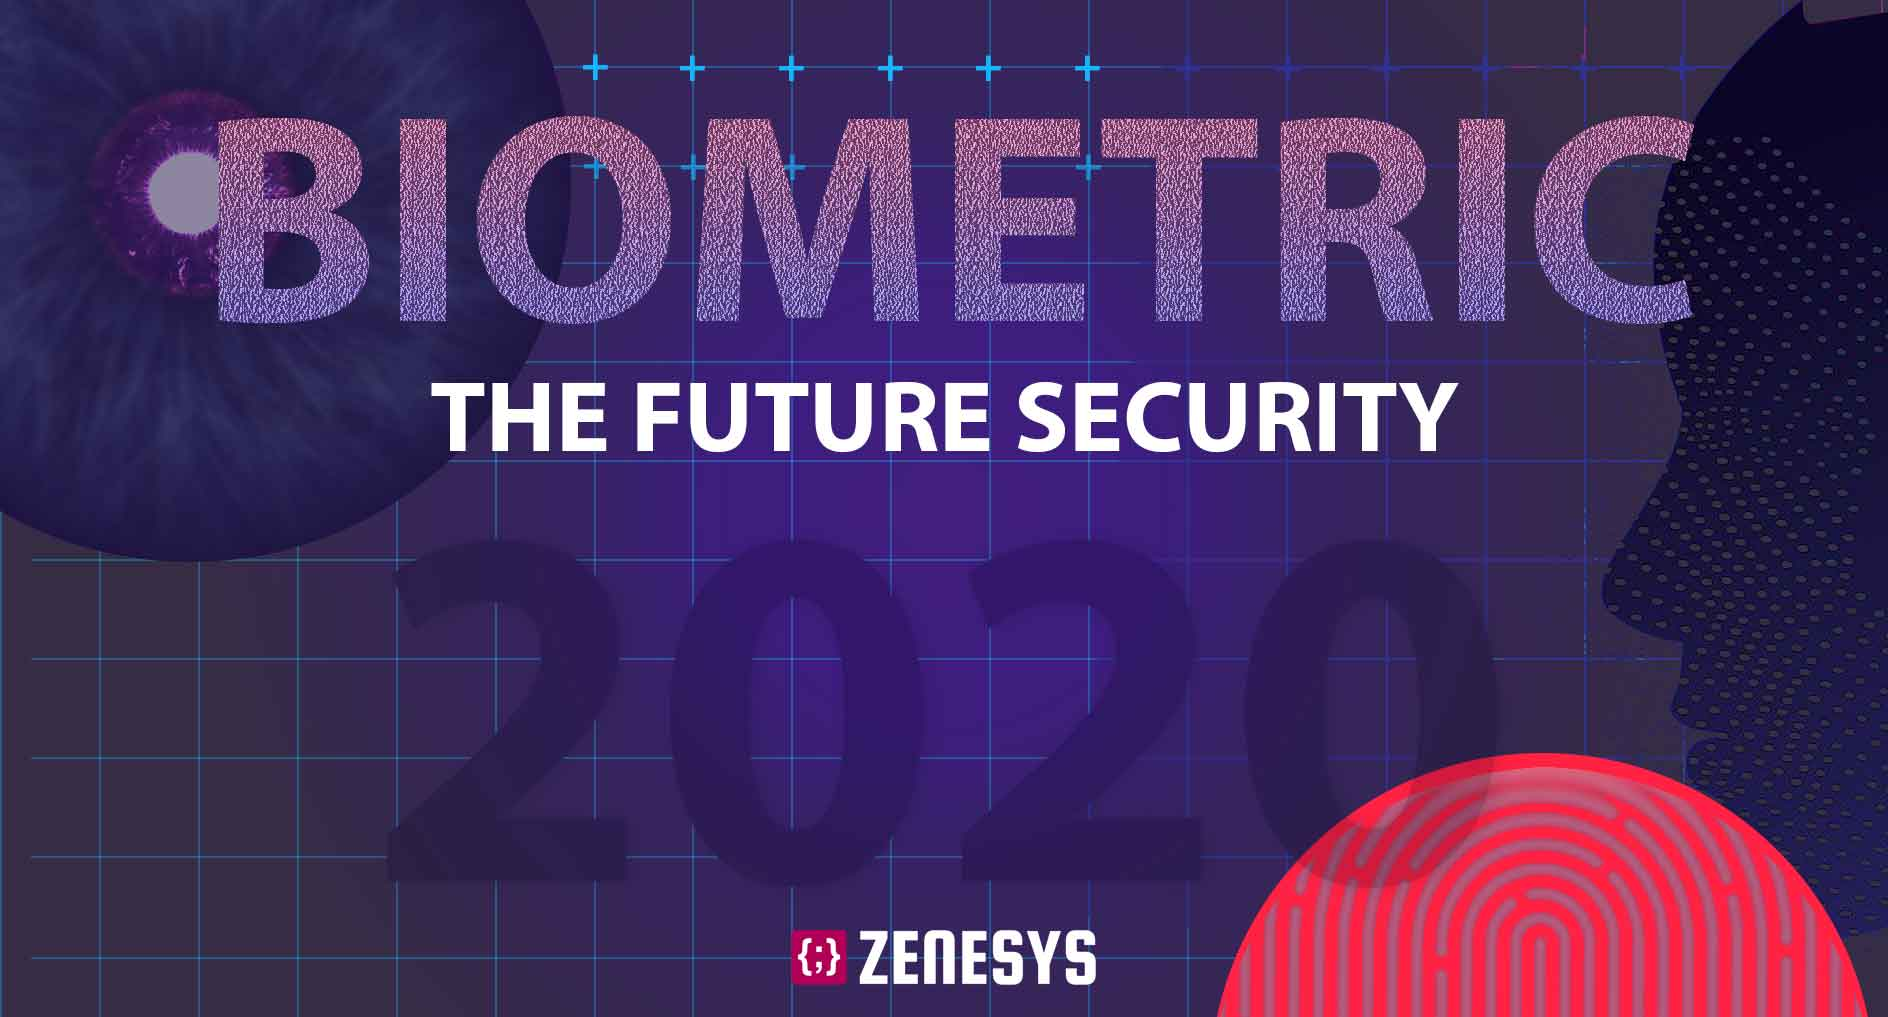 Biometric-The Future Security